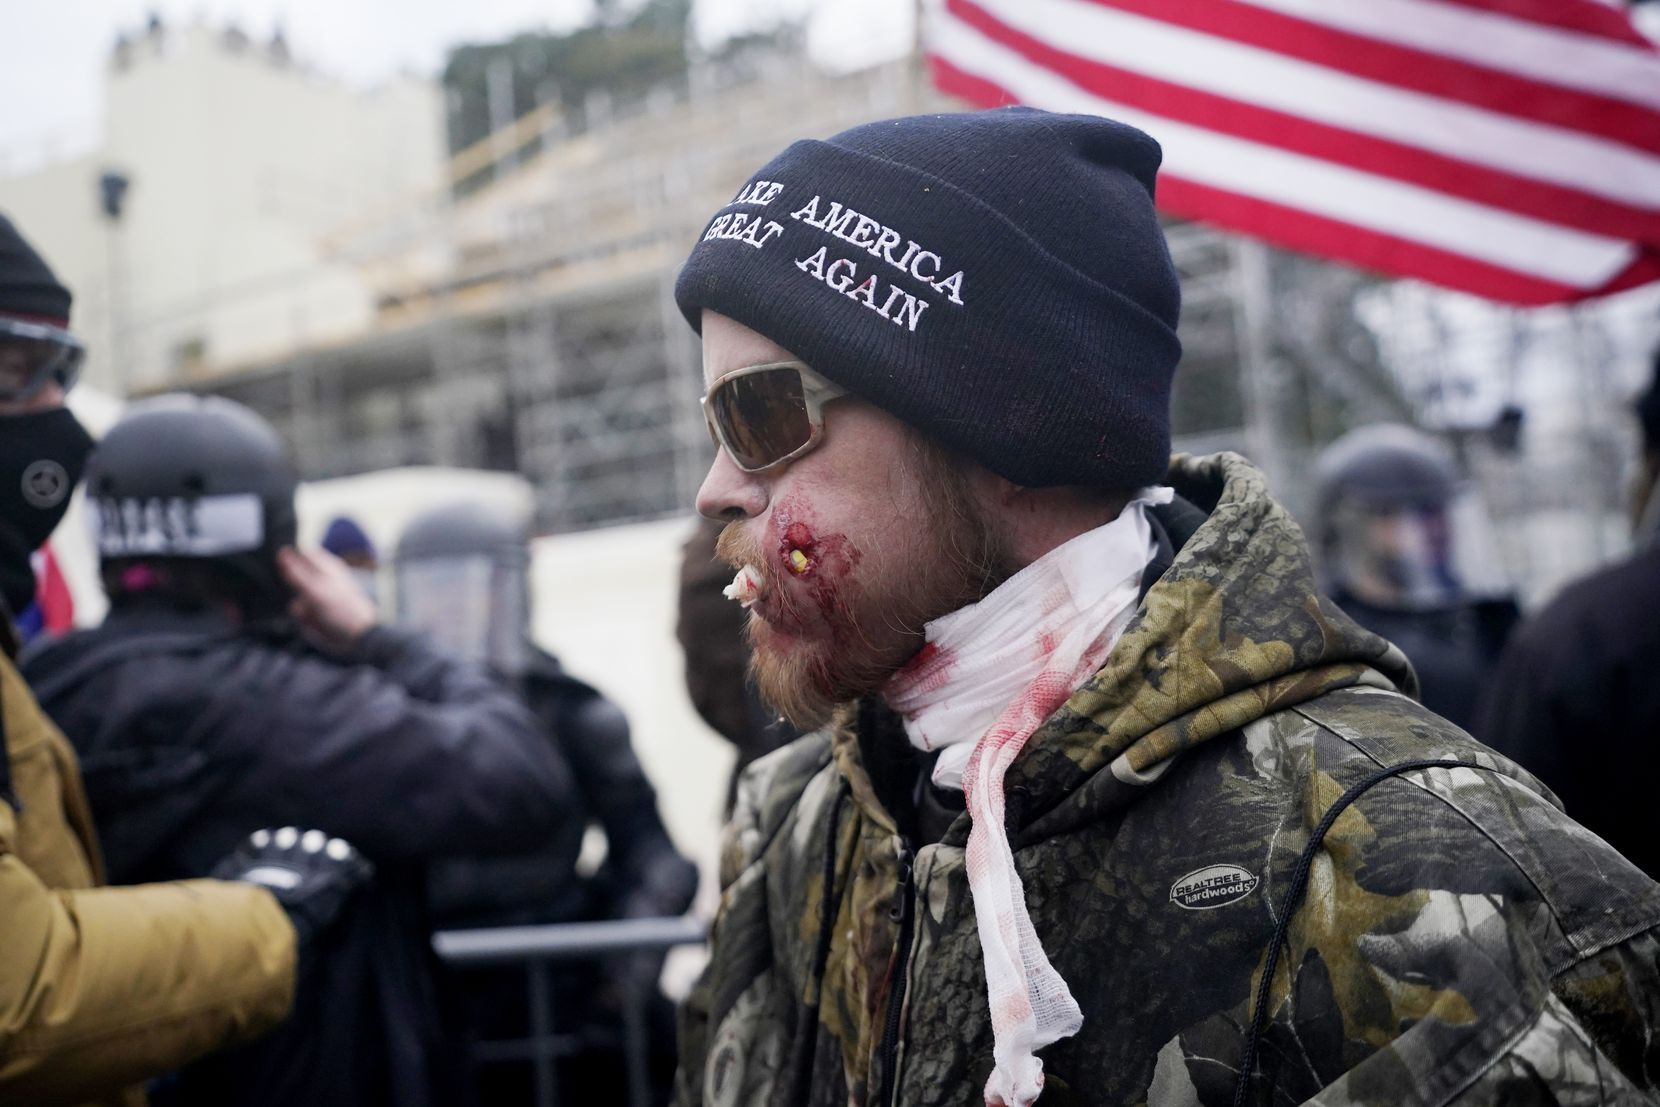 A protester is shown injured during a confrontation with police during a rally Wednesday, Jan. 6, 2021, at the Capitol in Washington. As Congress prepares to affirm President-elect Joe Biden's victory, thousands of people have gathered to show their support for President Donald Trump and his claims of election fraud.